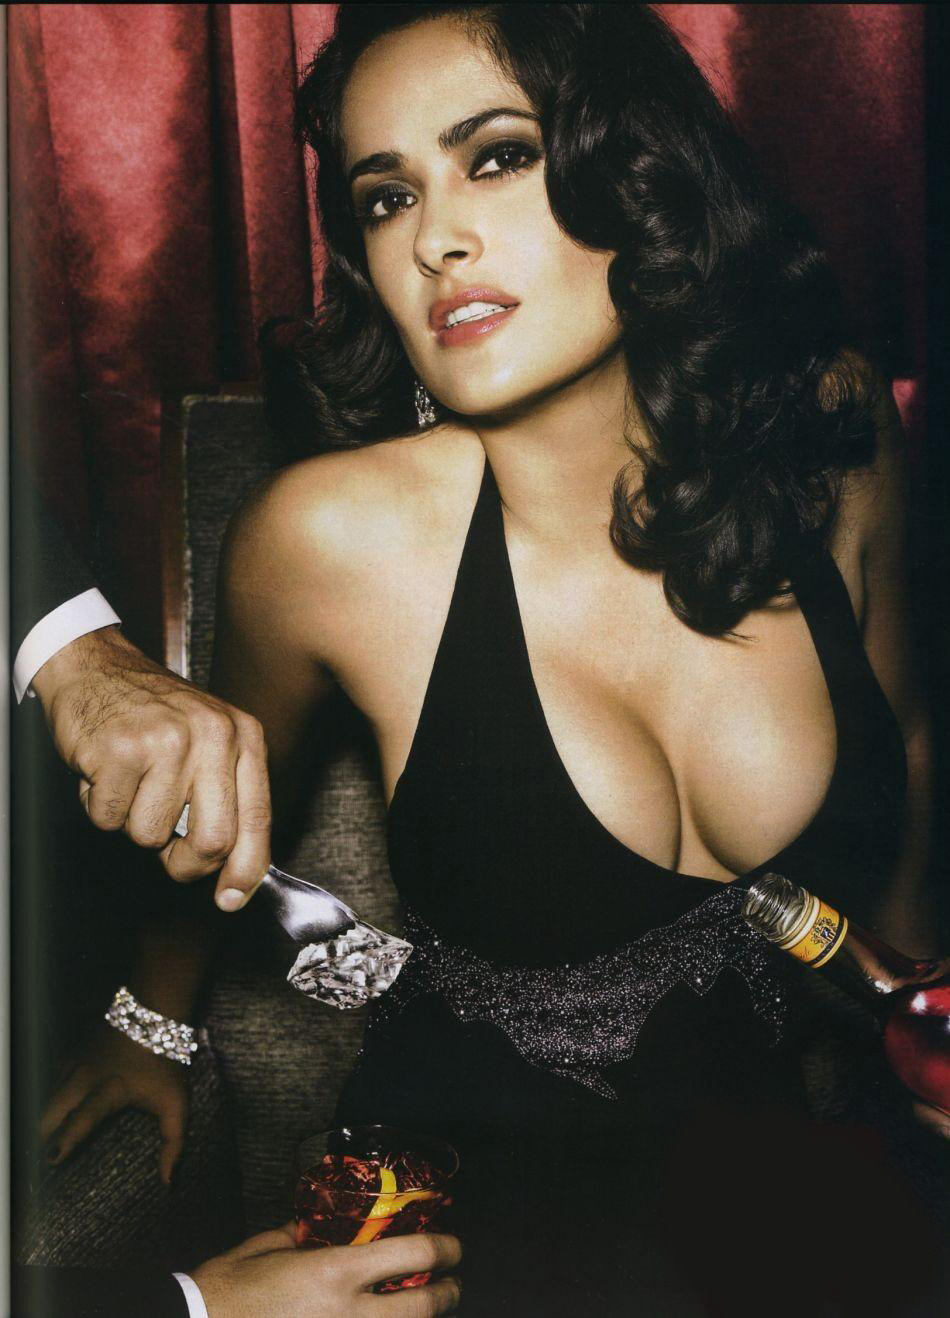 With you Actress salma hayek think, that